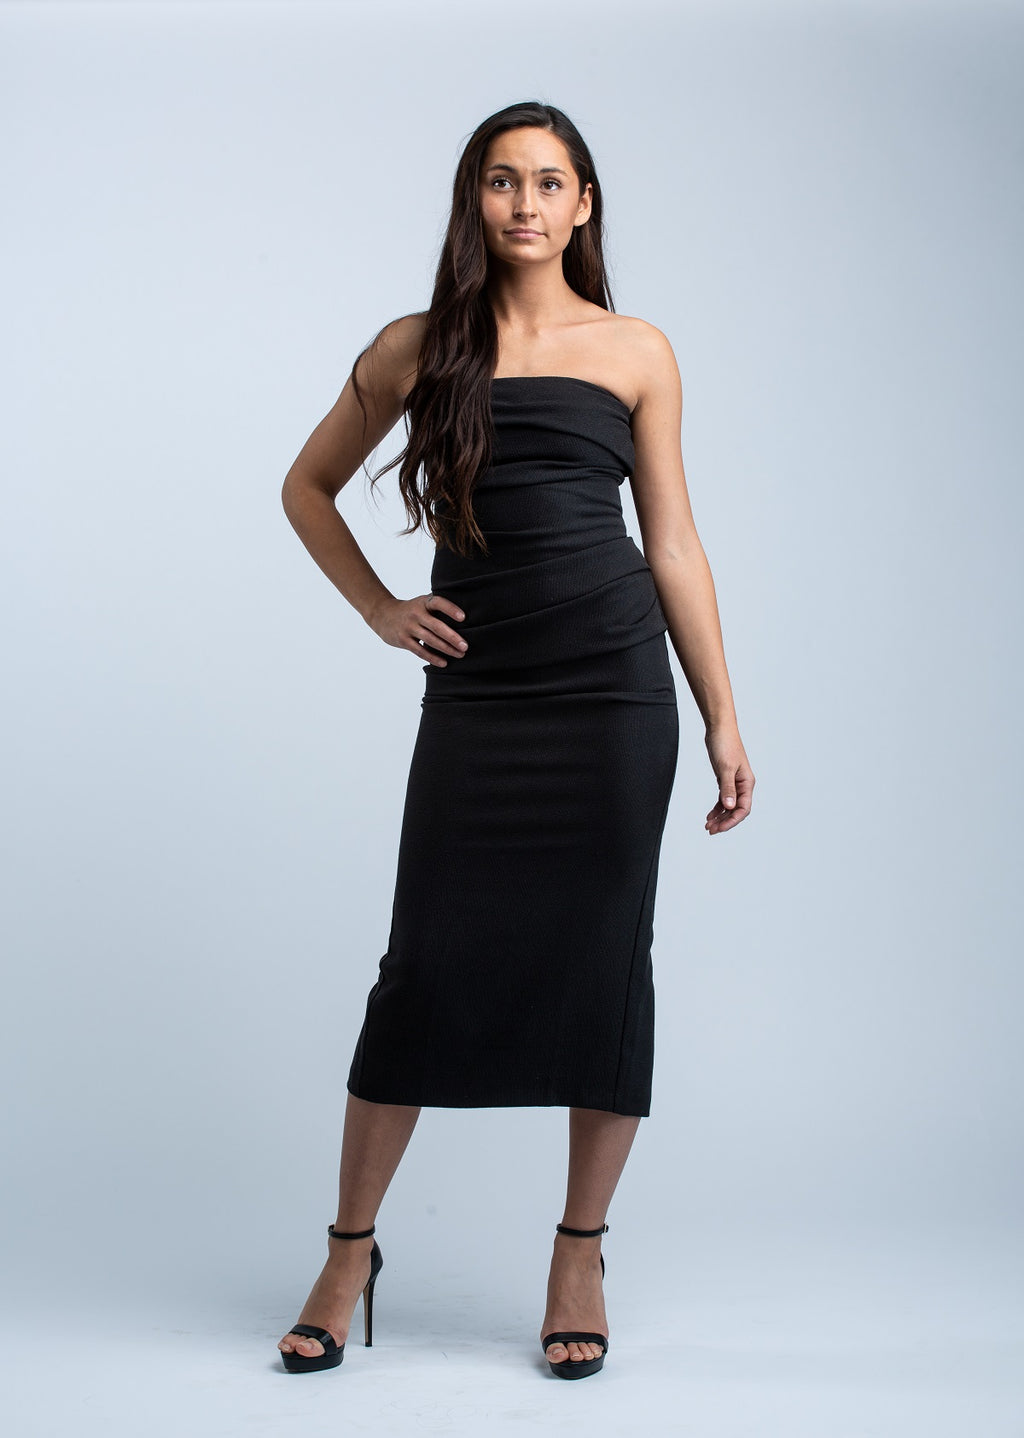 BEC & BRIDGE <br>Simply Irresistable Dress in Black - Trendy Fox Boutique